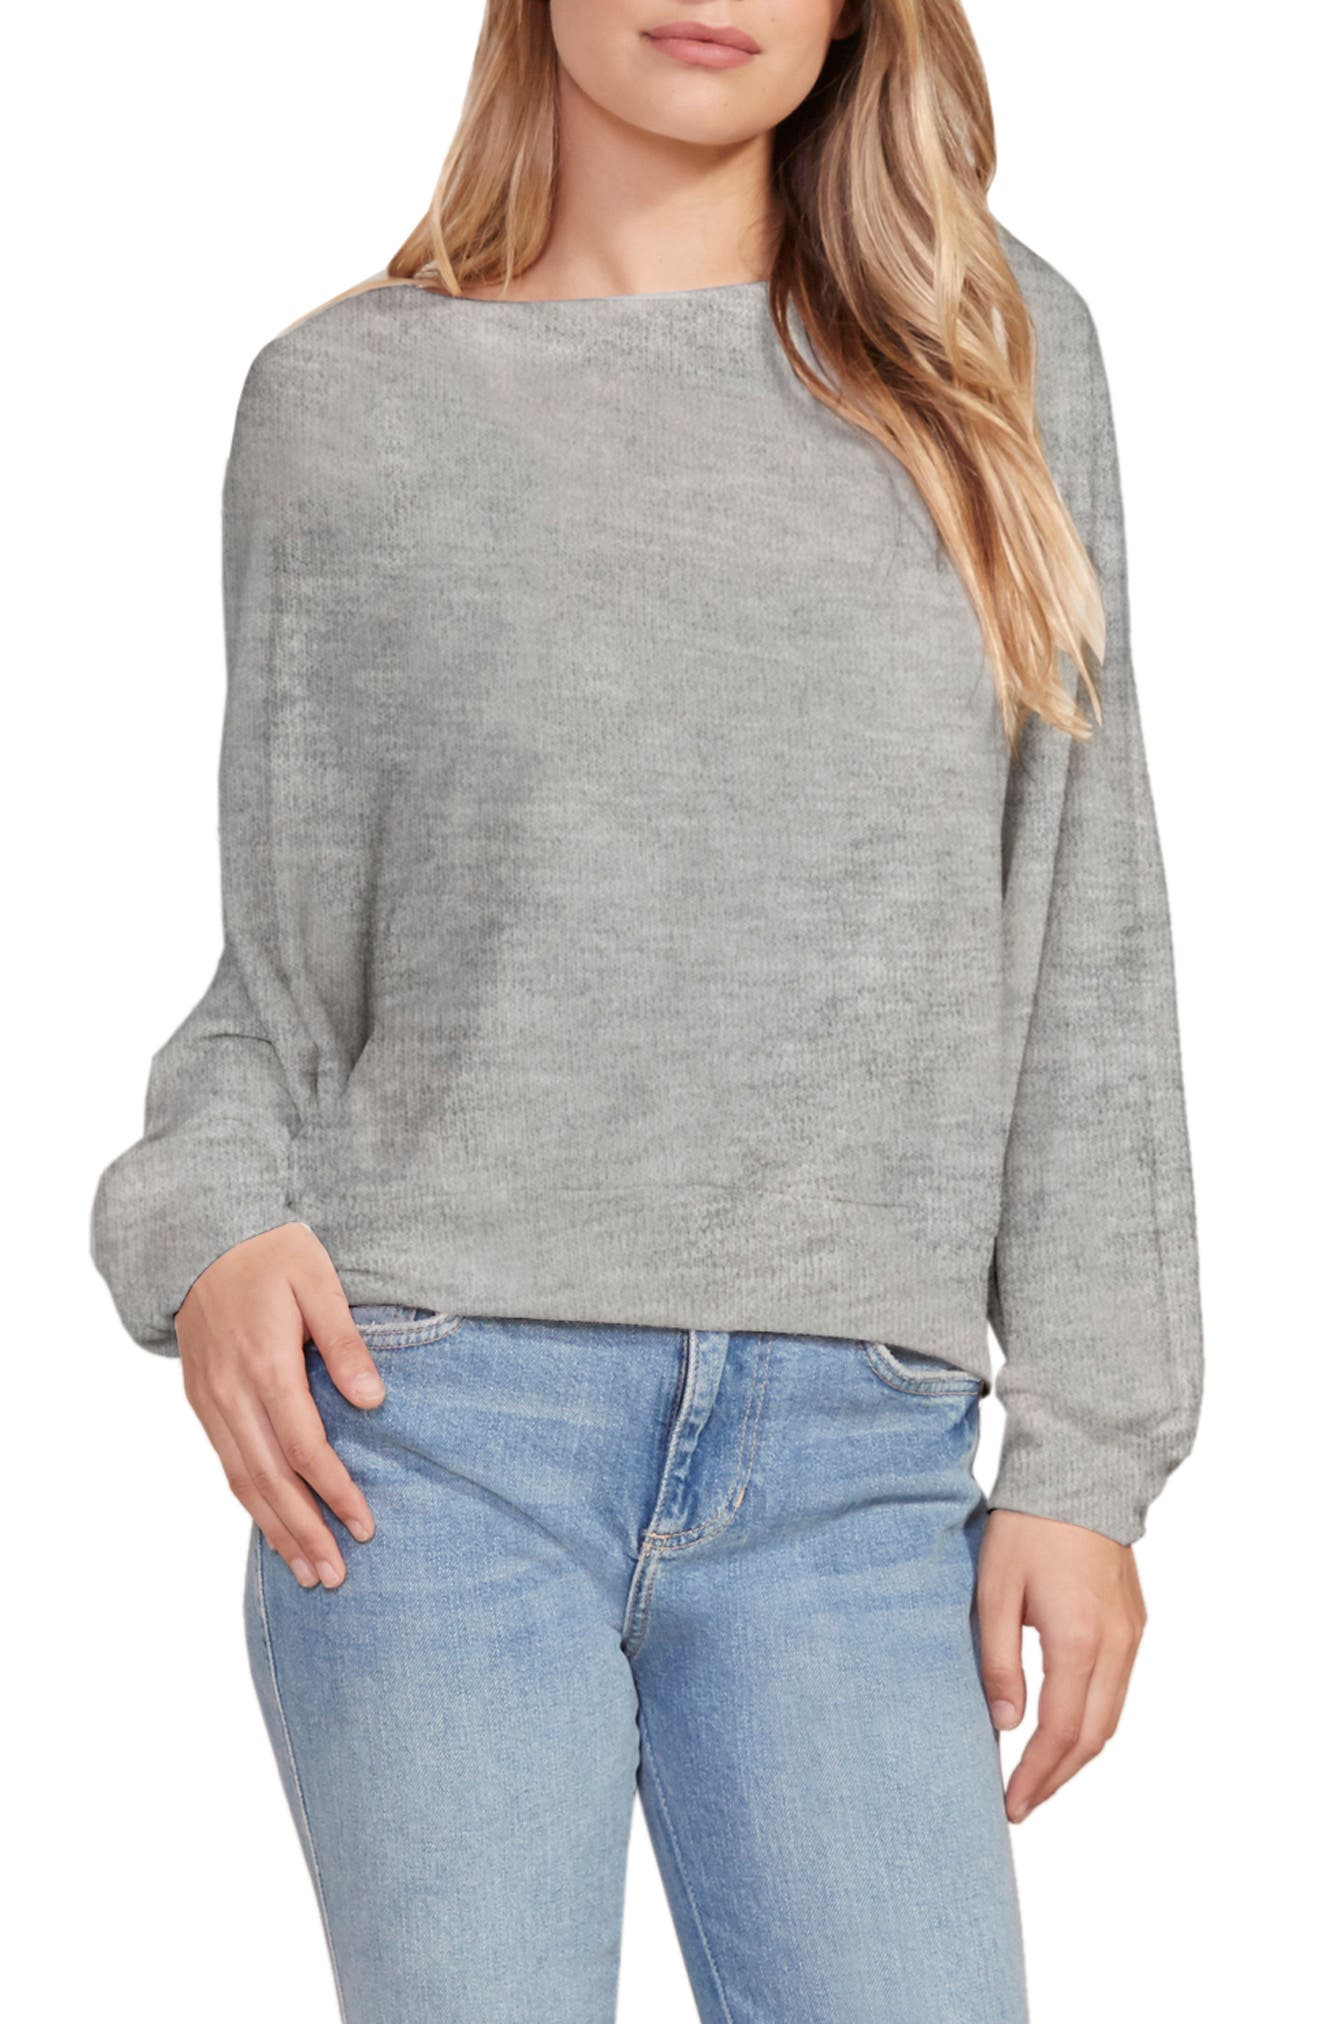 Slouchy dolman sleeves and a boat neck make you feel extra cool and relaxed in this soft sweater in a versatile heathered hue. Style Name: Cupcakes And Cashmere Nirvana Sweater. Style Number: 6086869. Available in stores.